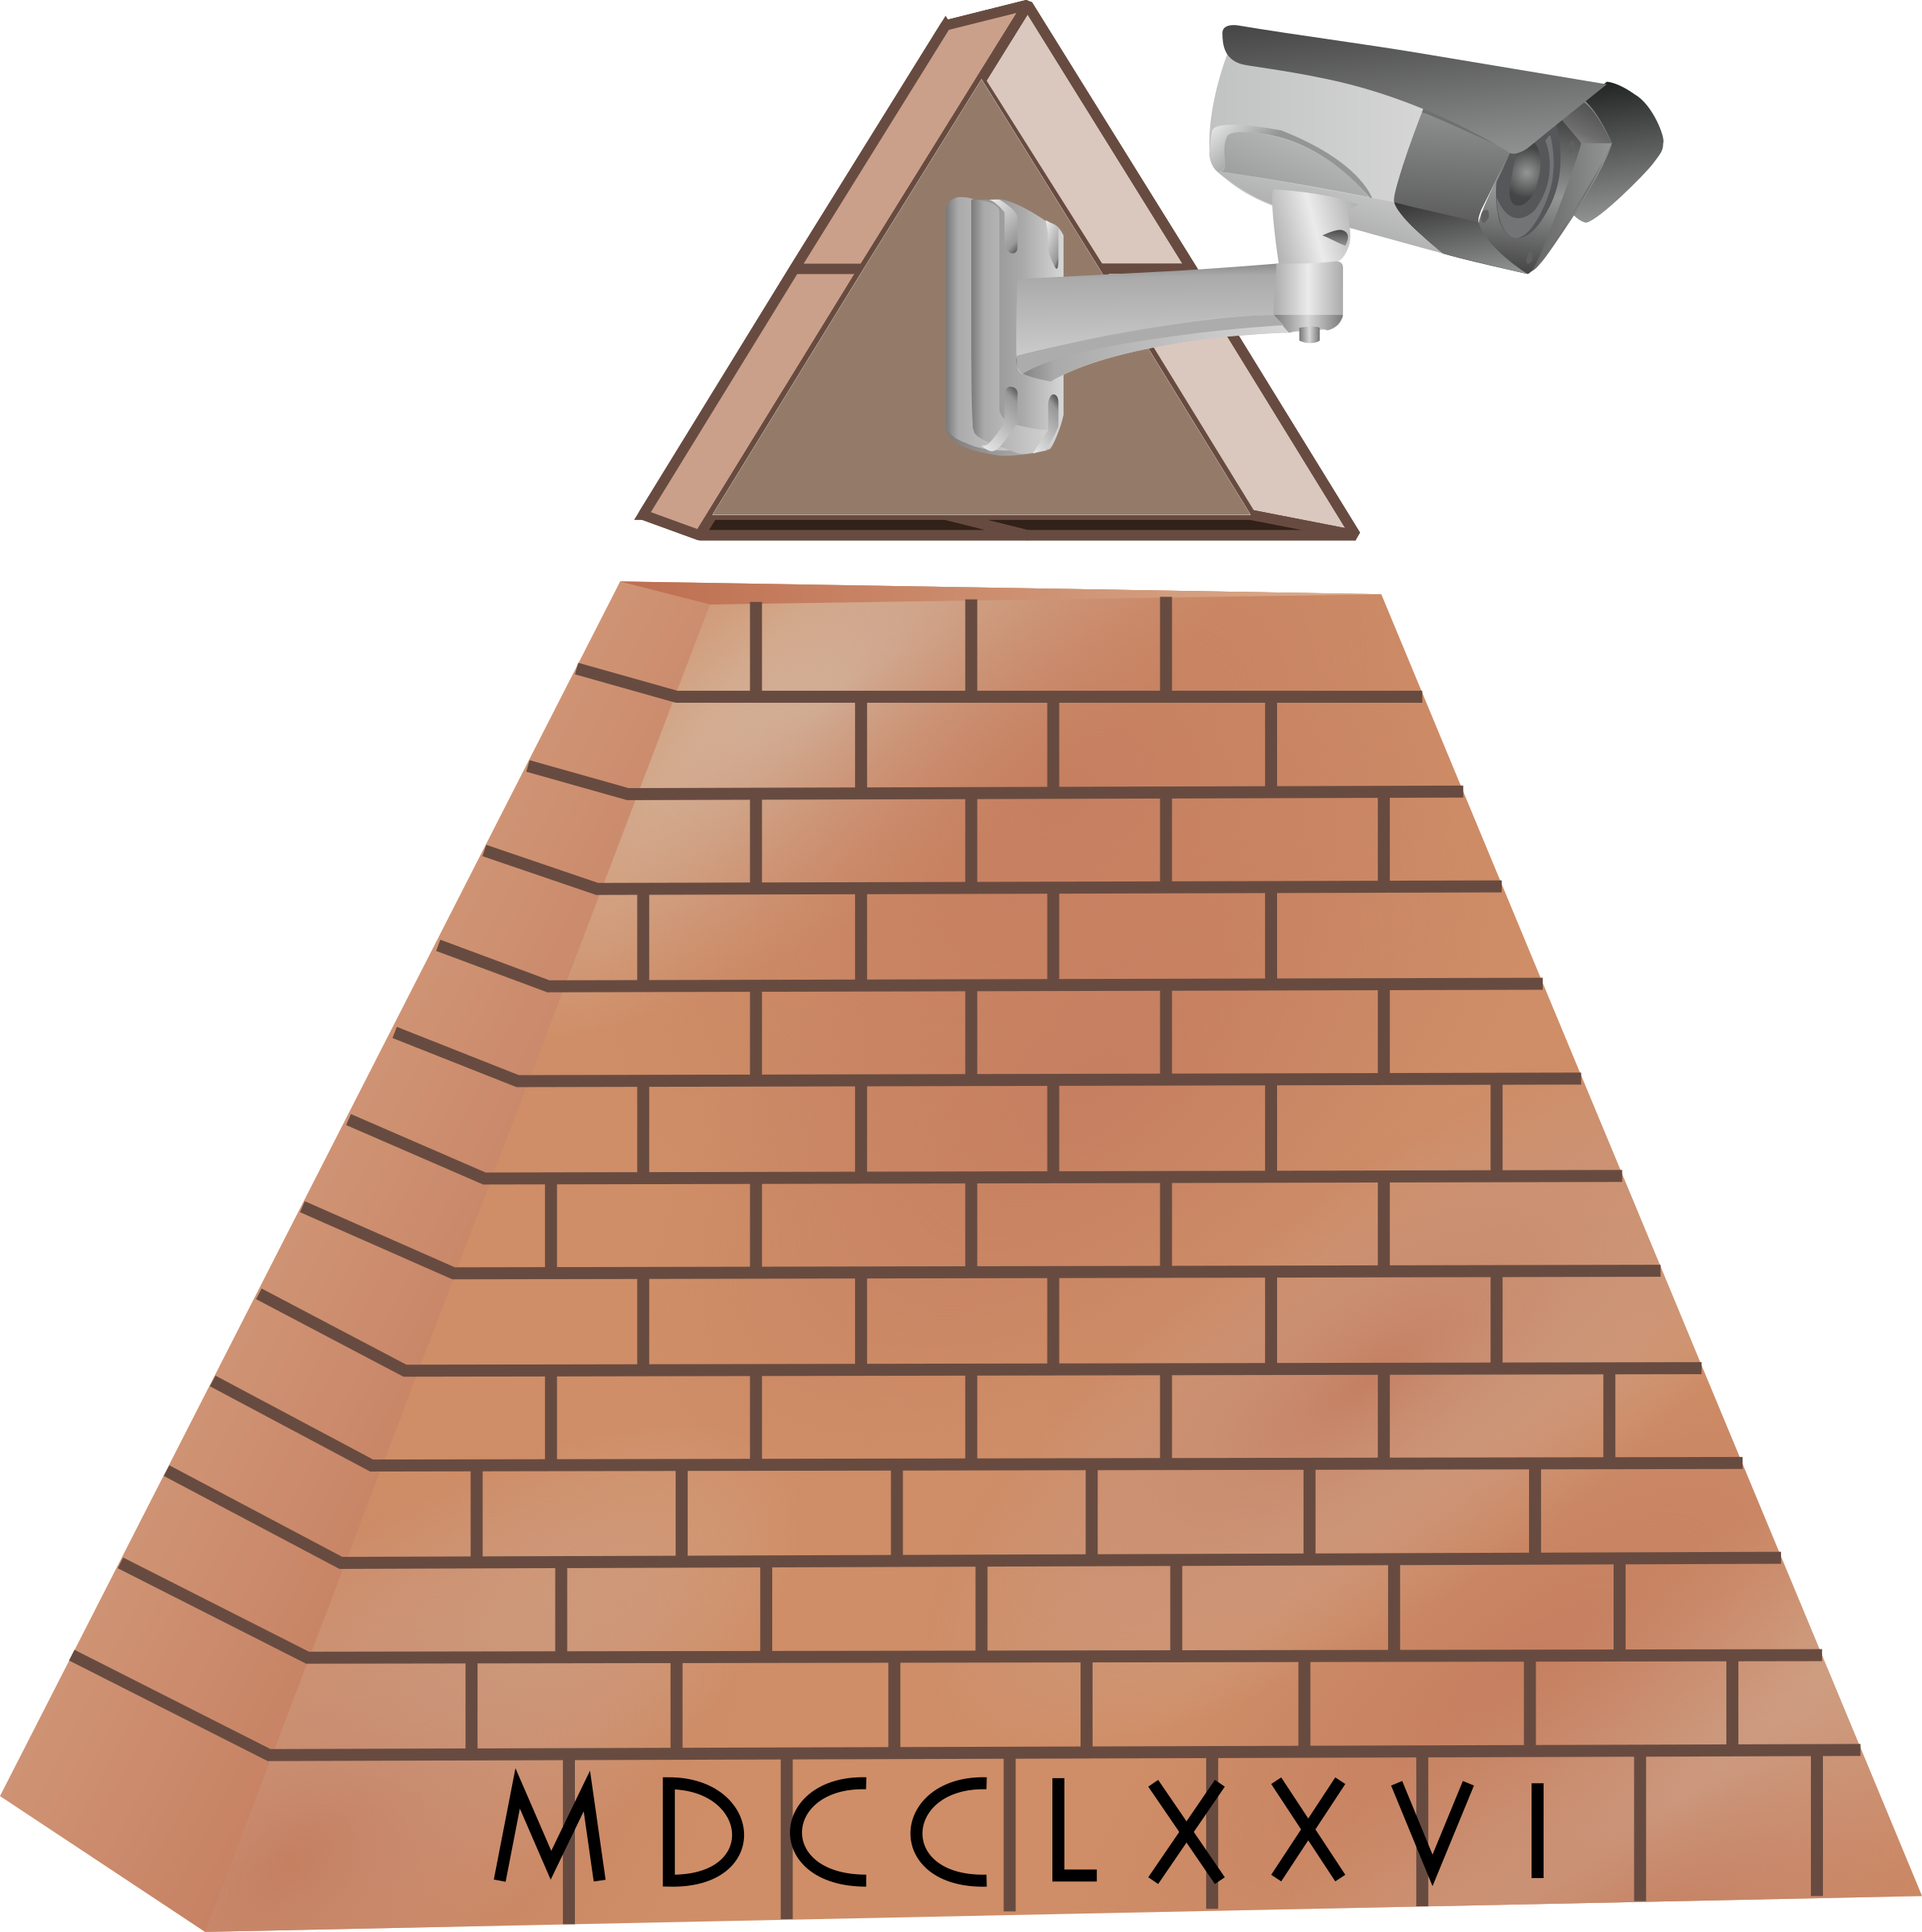 All Seeing Eye Camera Pyramid by GDJ